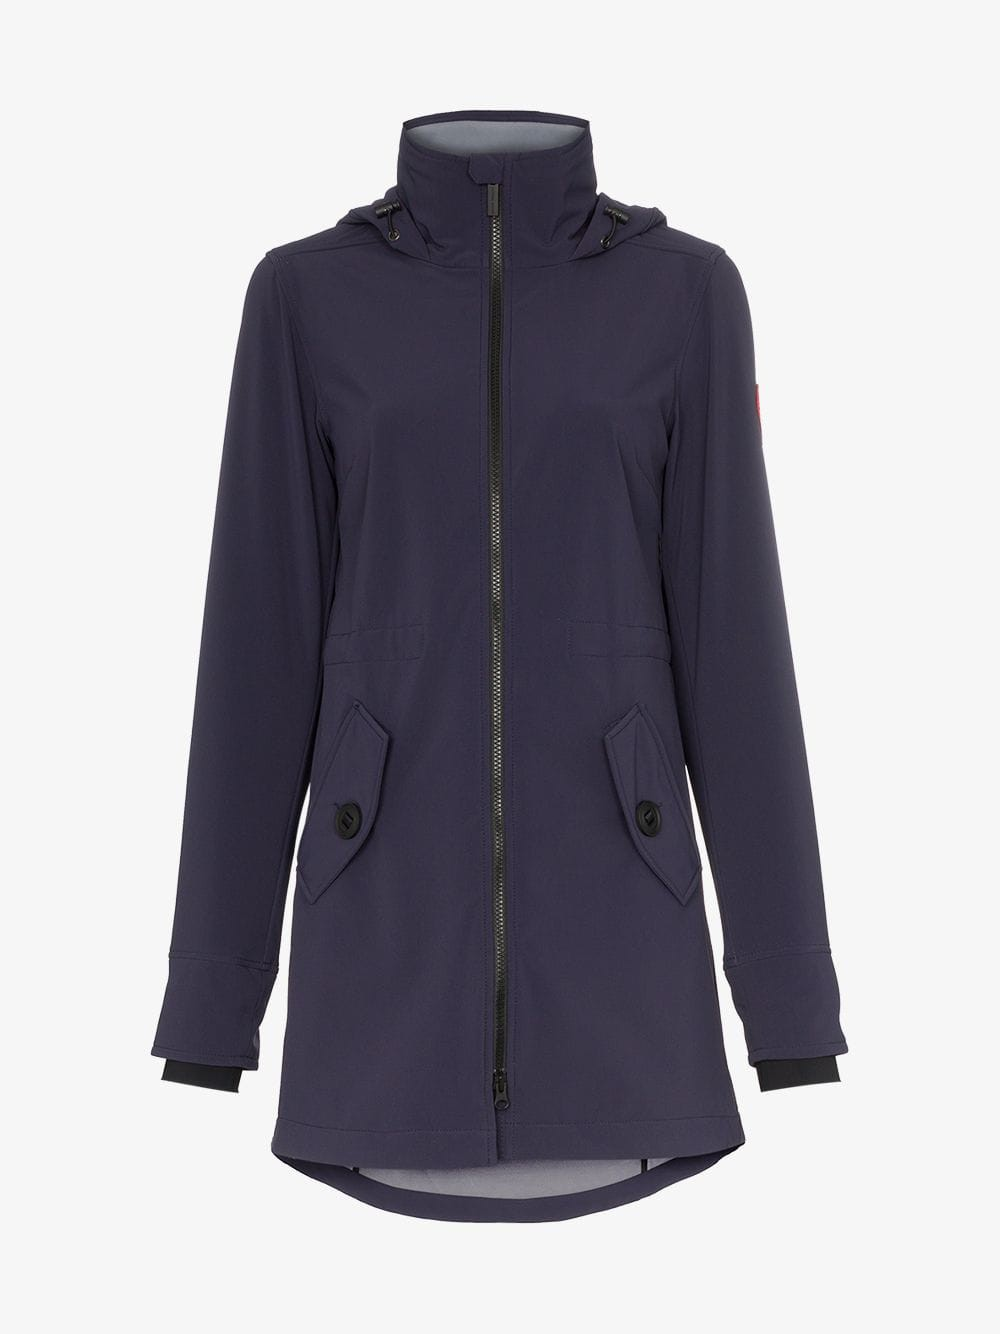 Canada Goose Avery hooded jacket in blue